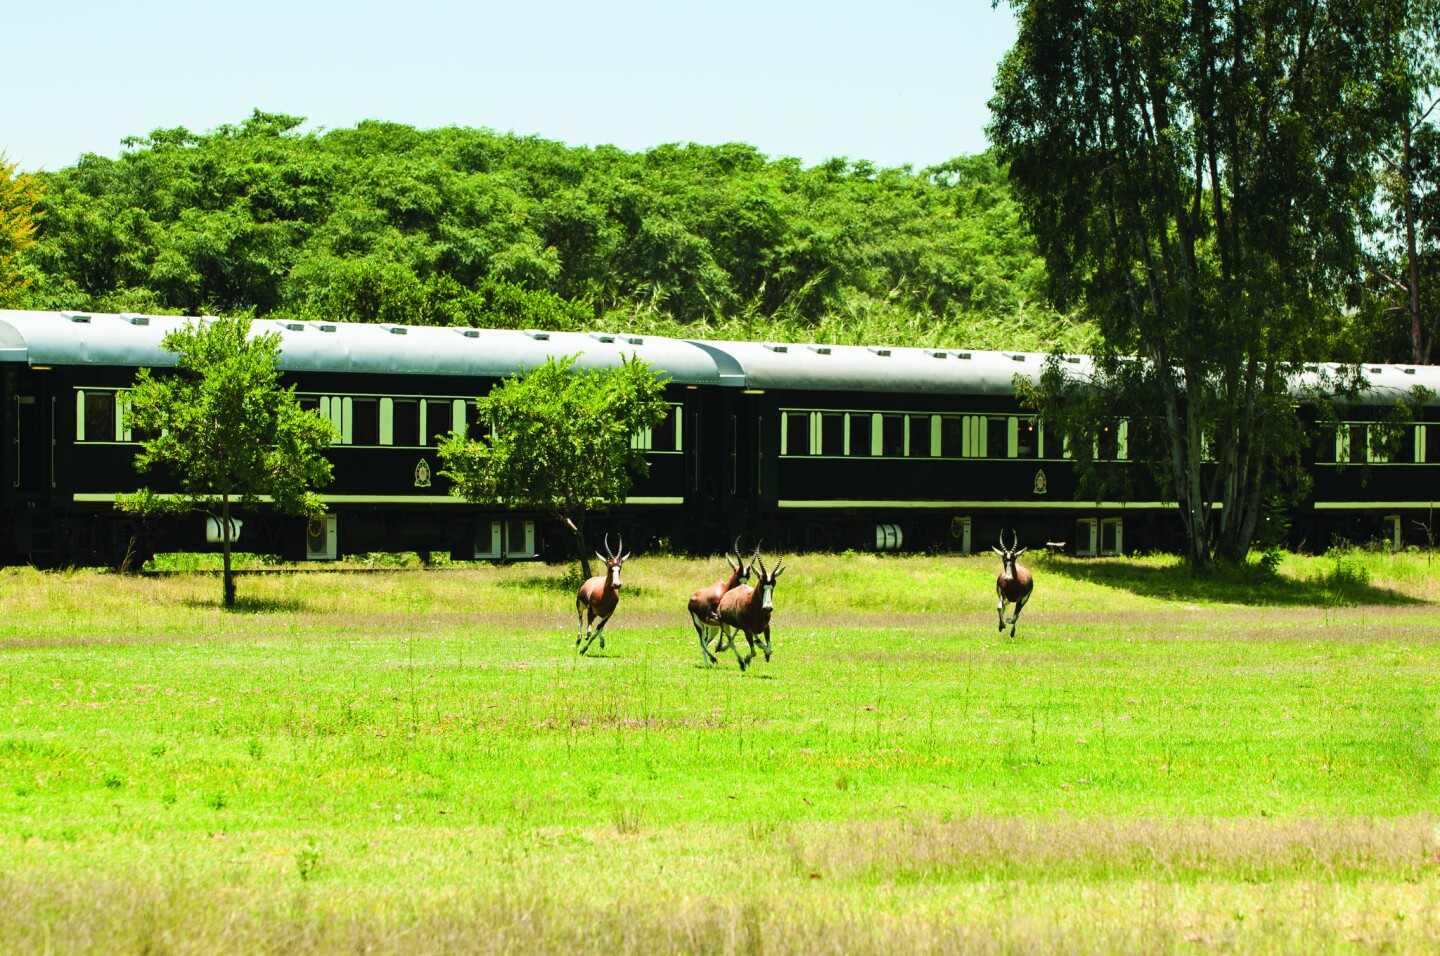 A tour of South Africa by train